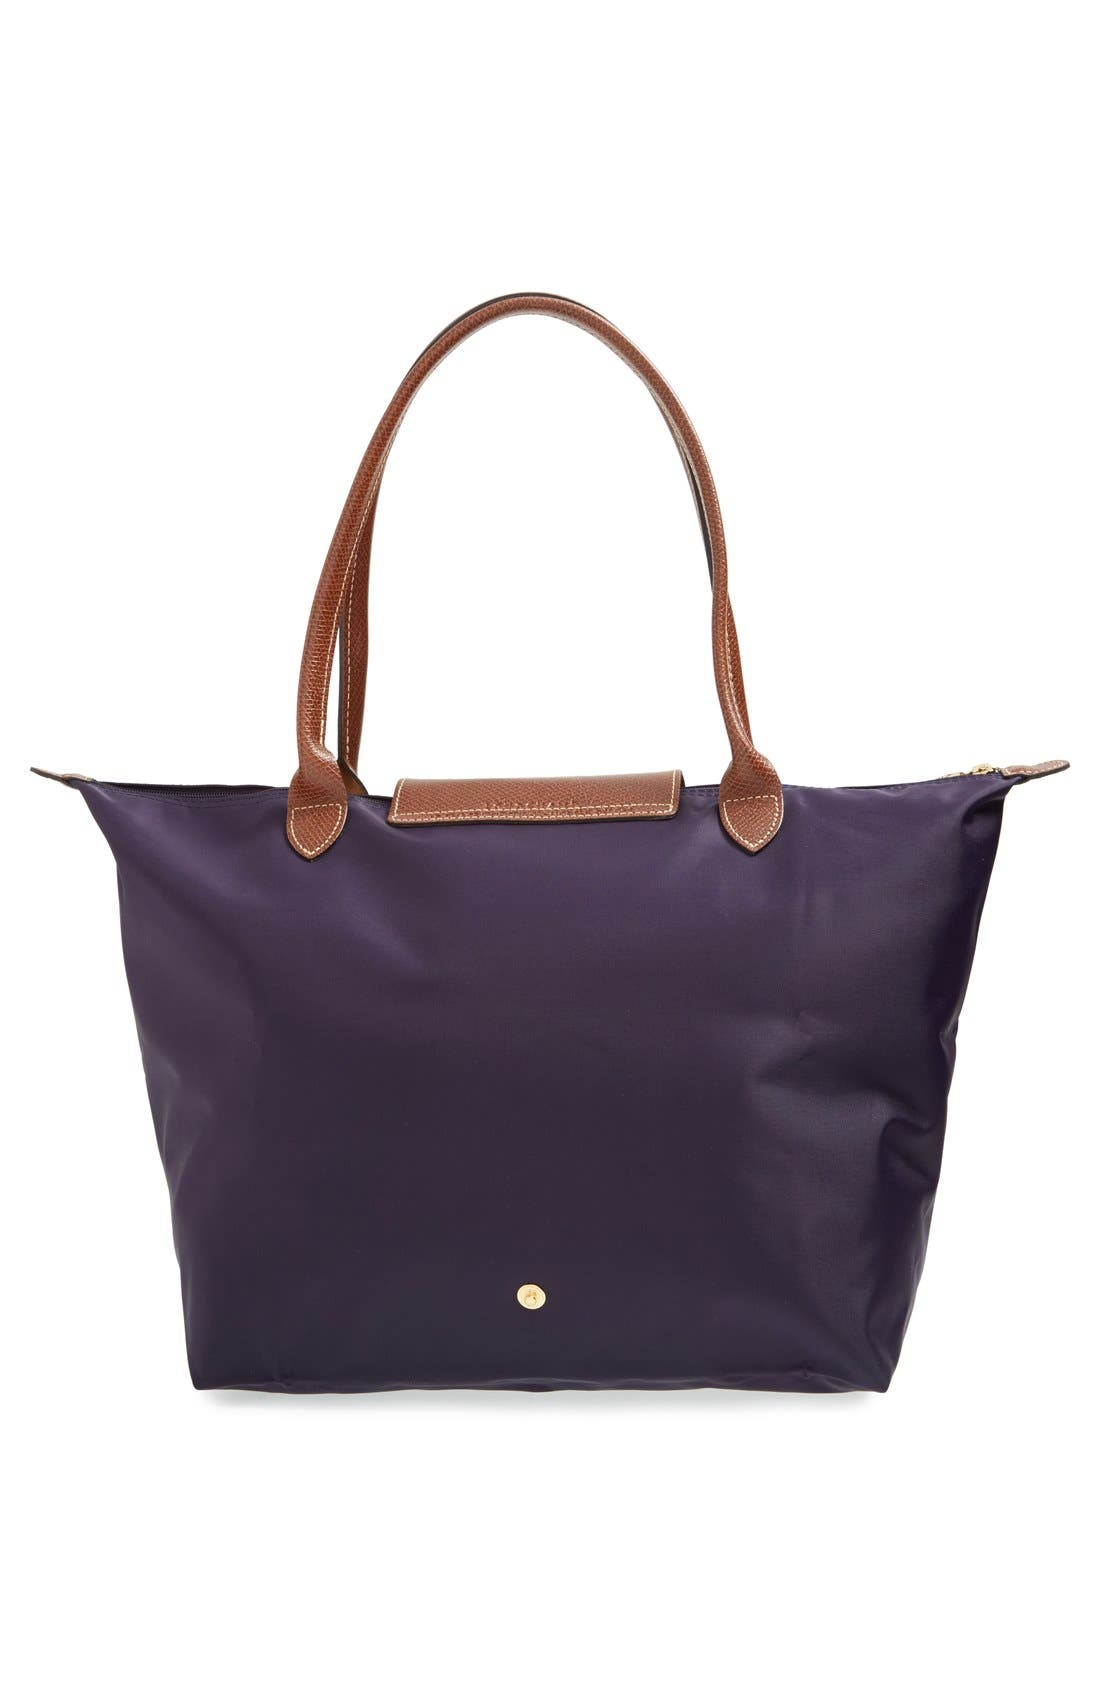 Alternate Image 3  - Longchamp 'Large Le Pliage' Nylon Tote